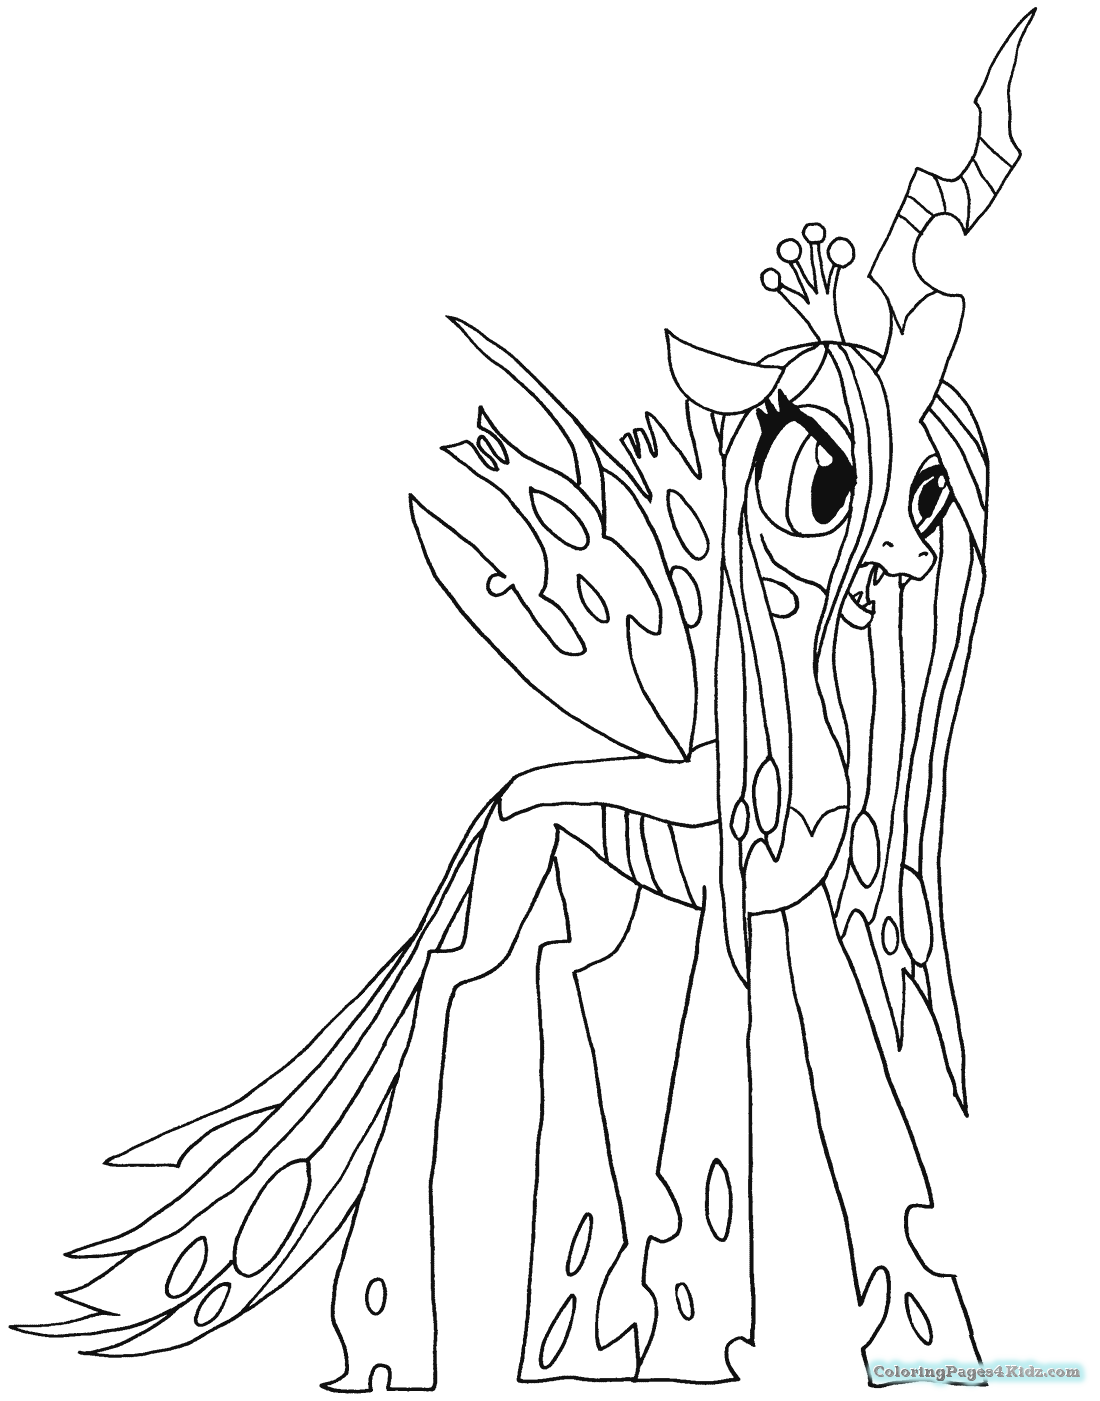 nightmare moon pony coloring page my little pony nightmare moon coloring pages coloring moon nightmare pony page